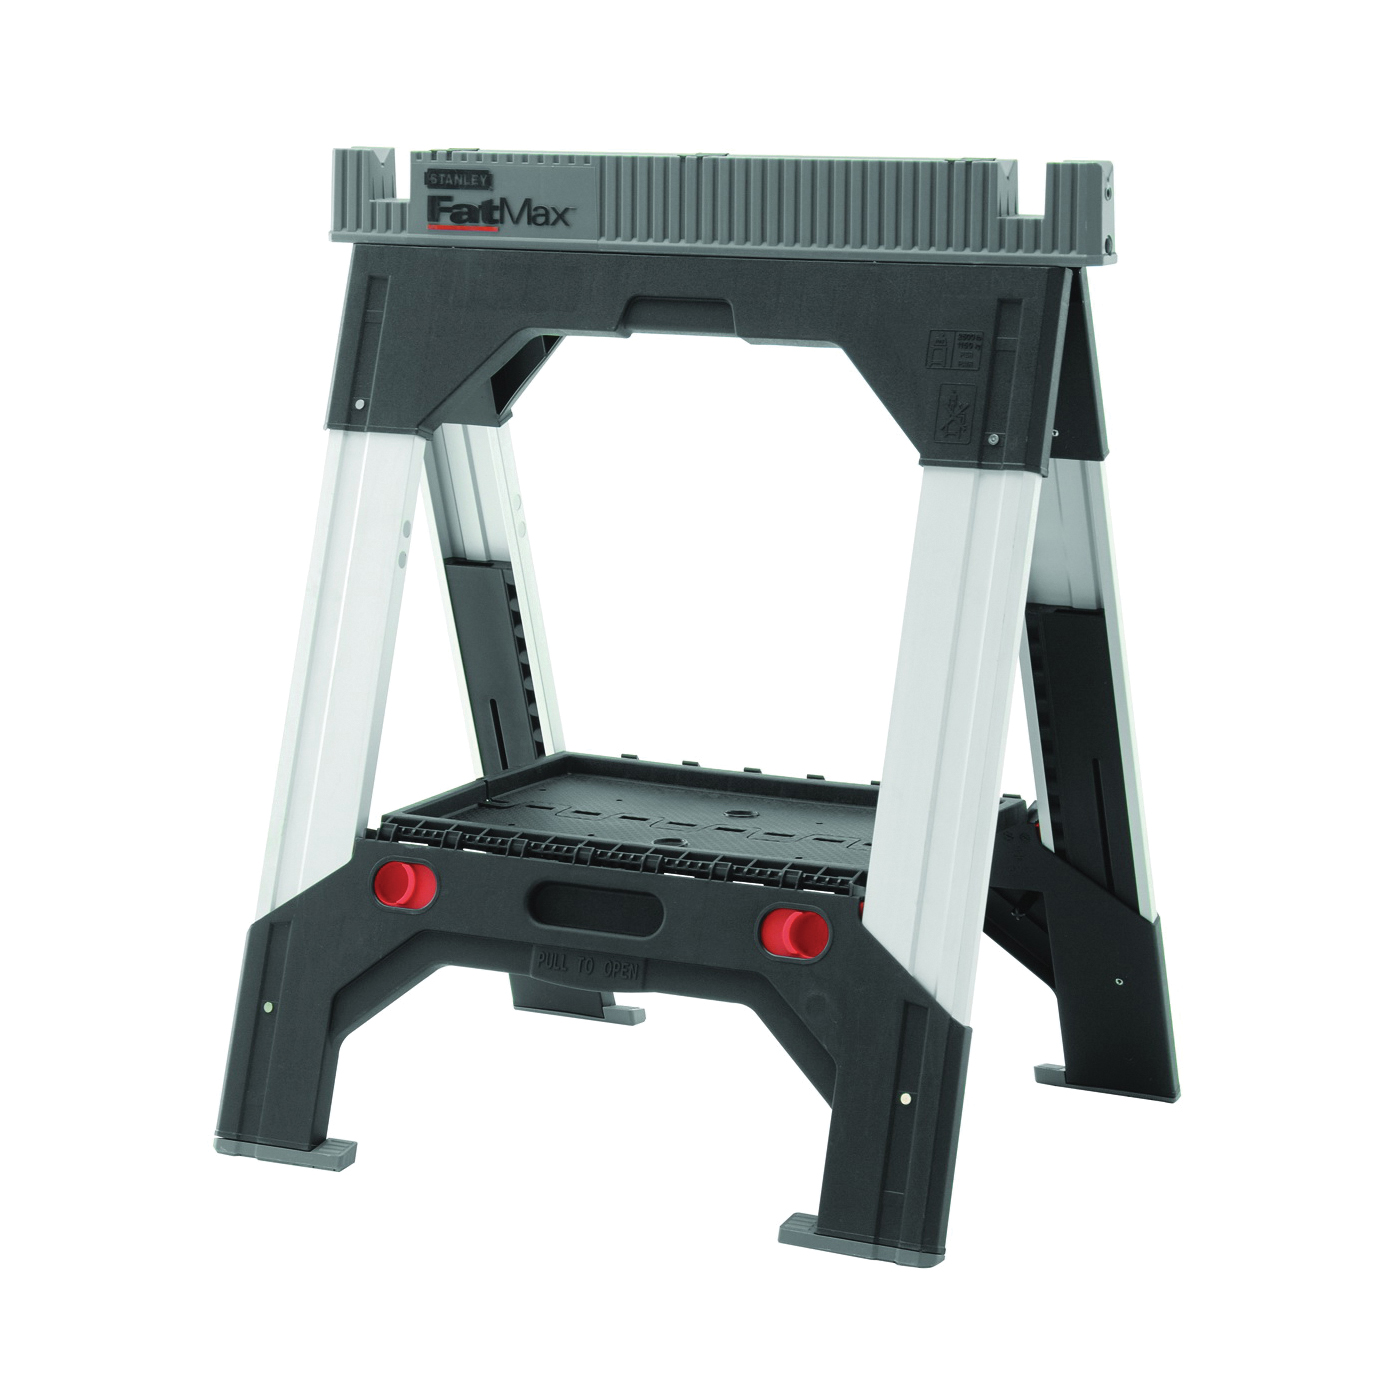 Picture of STANLEY FATMAX 011031S Adjustable Leg Sawhorse, 2500 lb, 2-1/8 in W, 32 to 39 in H, 27-3/16 in D, Polypropylene